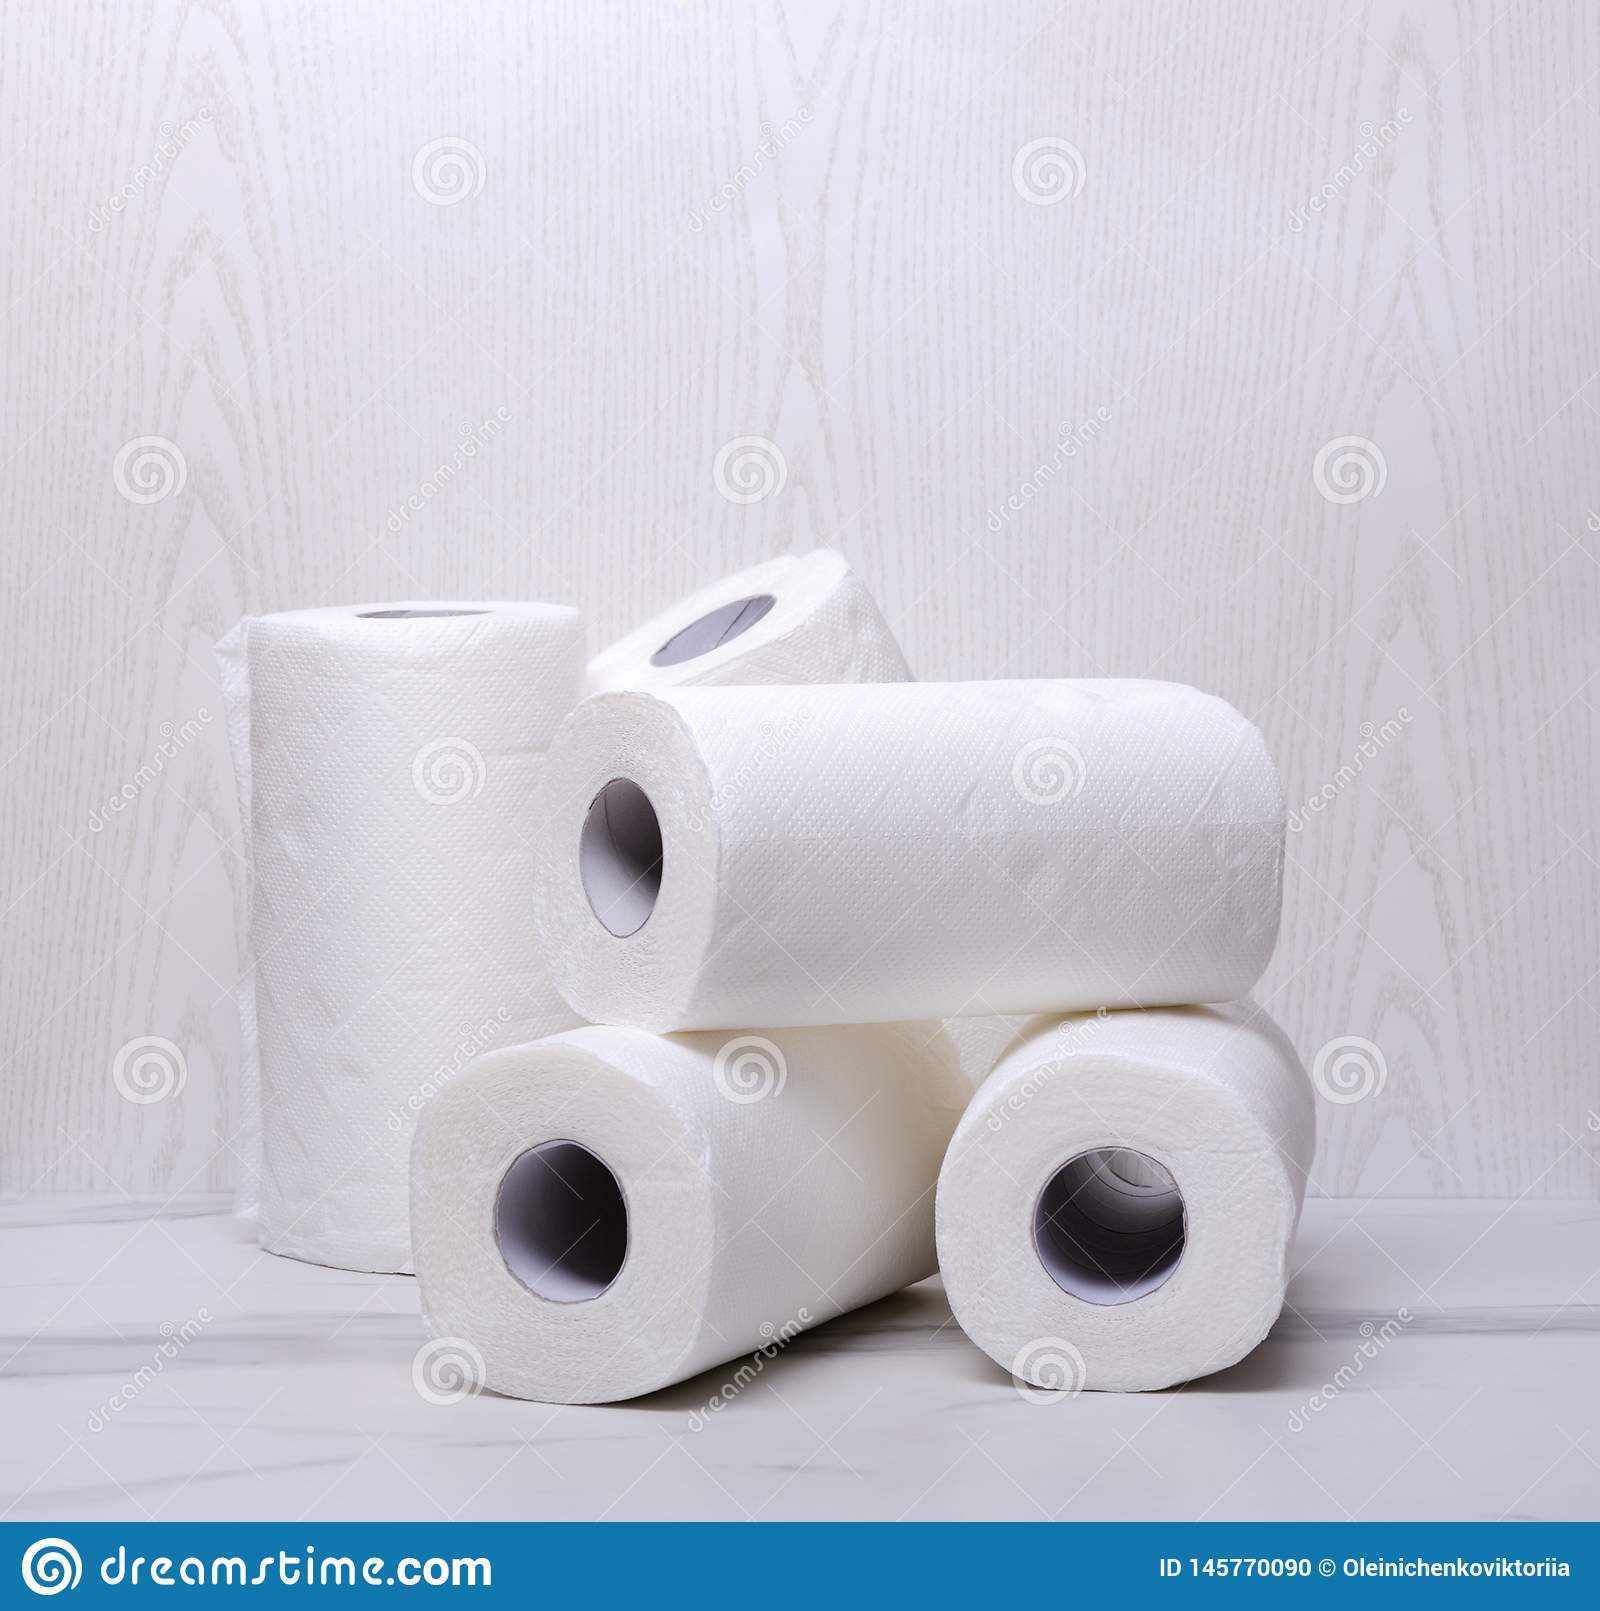 Stack Of Paper Towels White And Soft Rolled Paper For Cleaning The House Stock Photo Image Of Background Roll 145770090